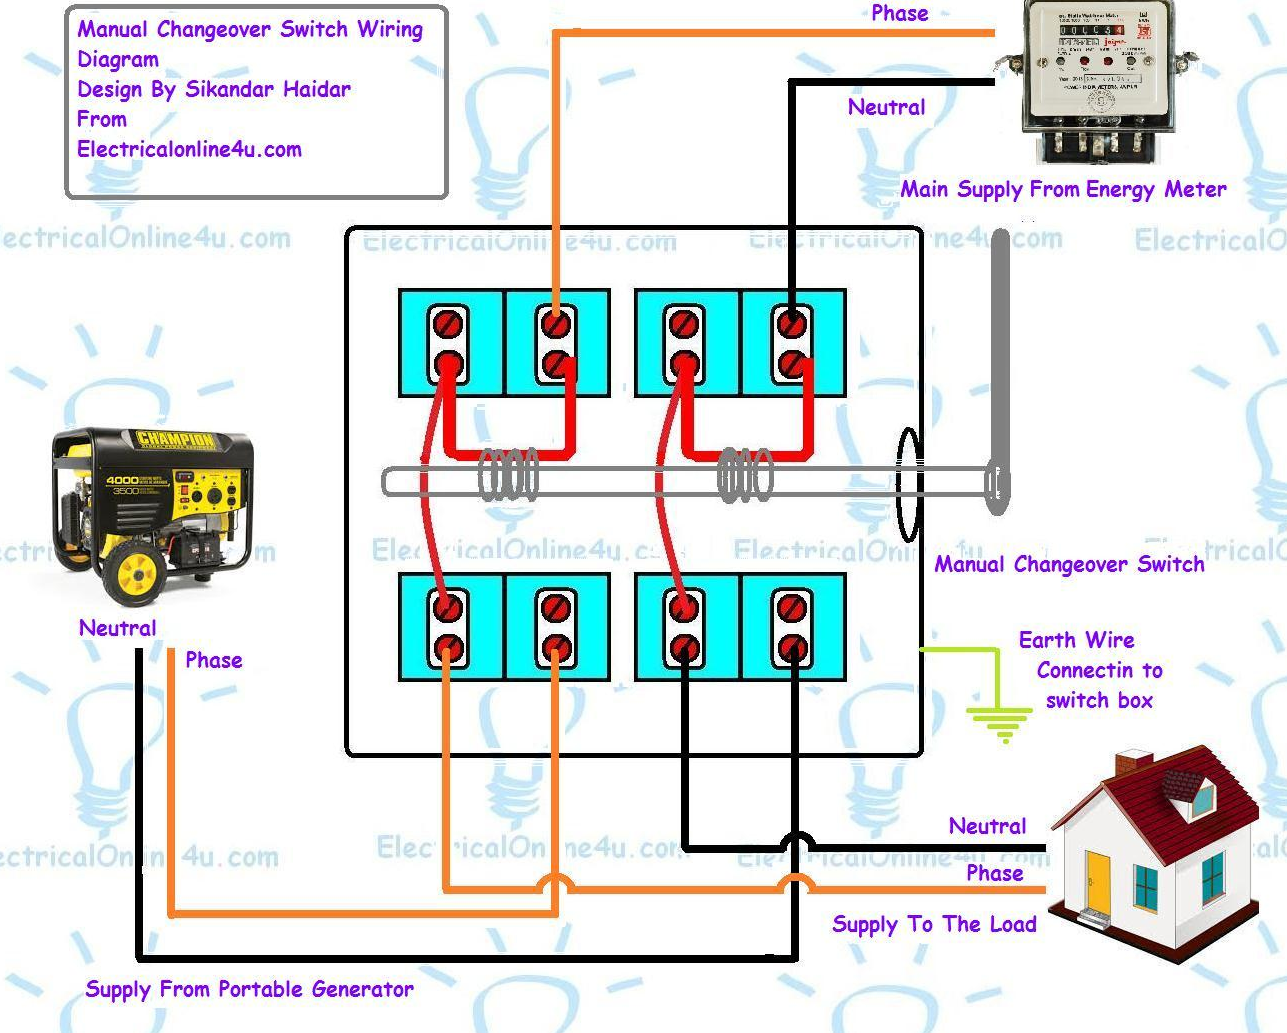 manual%2Bchangeover%2Bswitch%2Bwiring%2Bdiagram manual changeover switch wiring diagram for portable generator electrical switch wiring diagram at creativeand.co